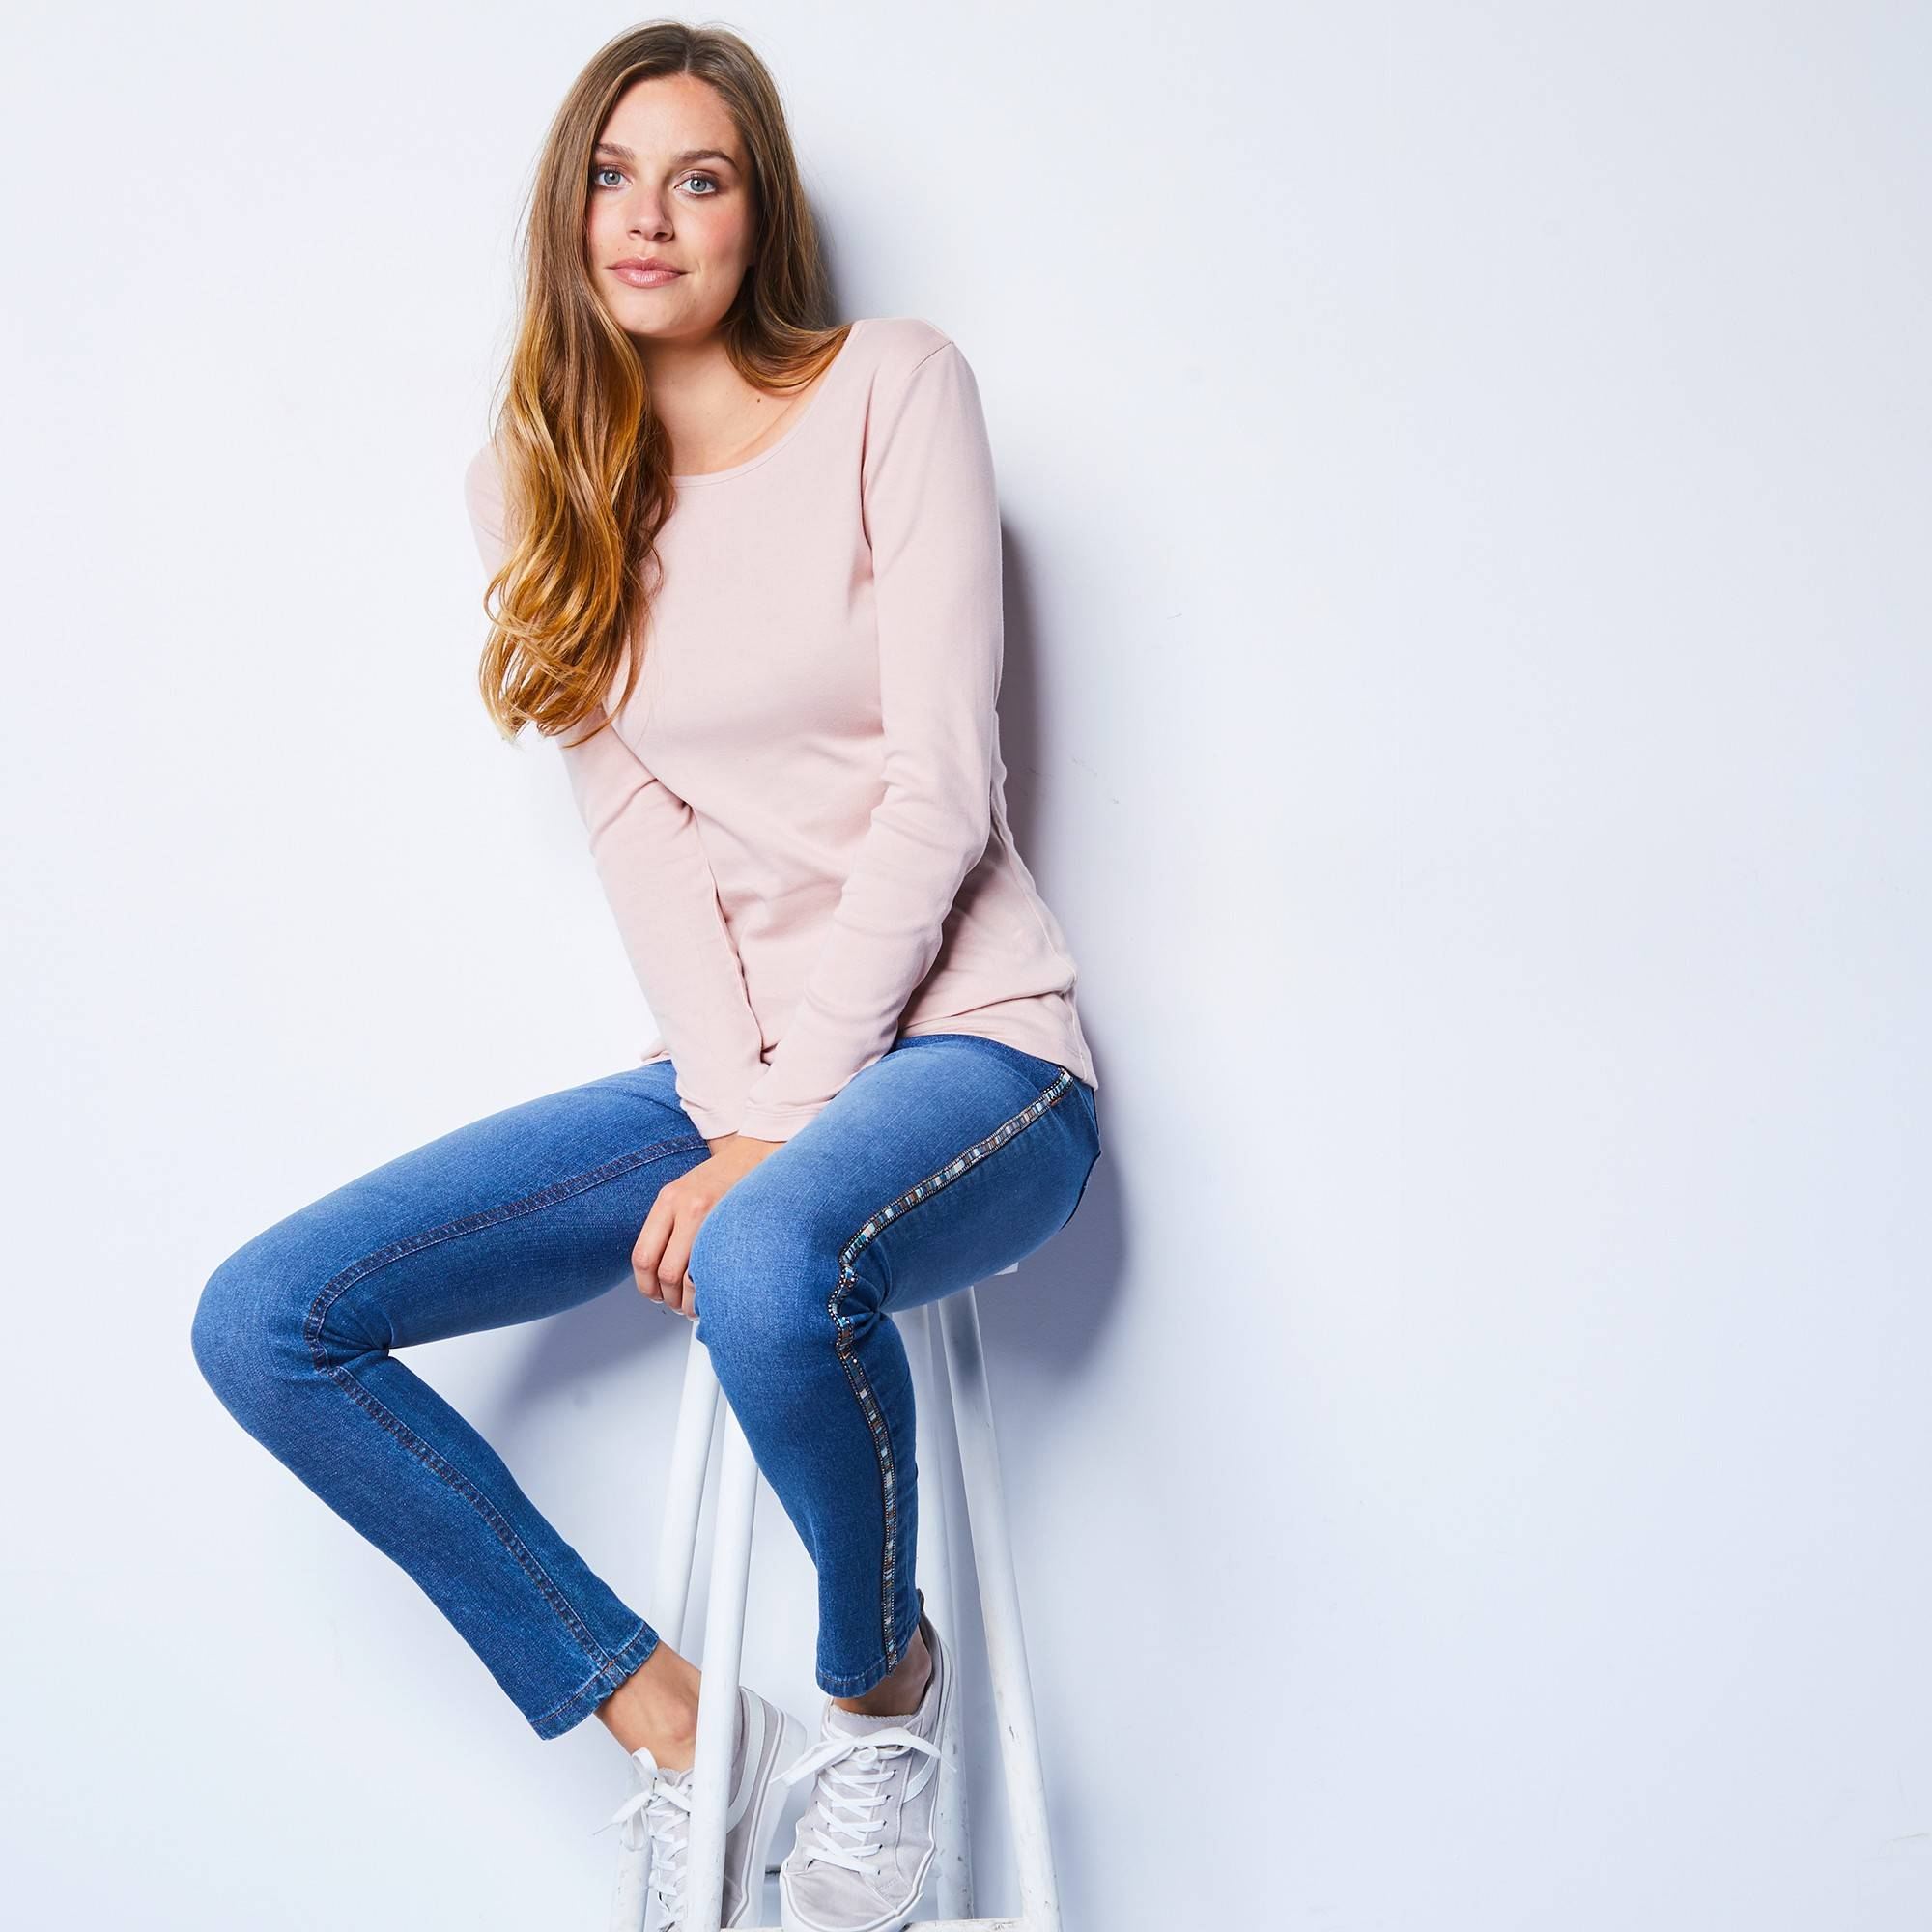 Tee-shirt manches longues - rose poudré - Rose - Taille : 38,40 - Blancheporte